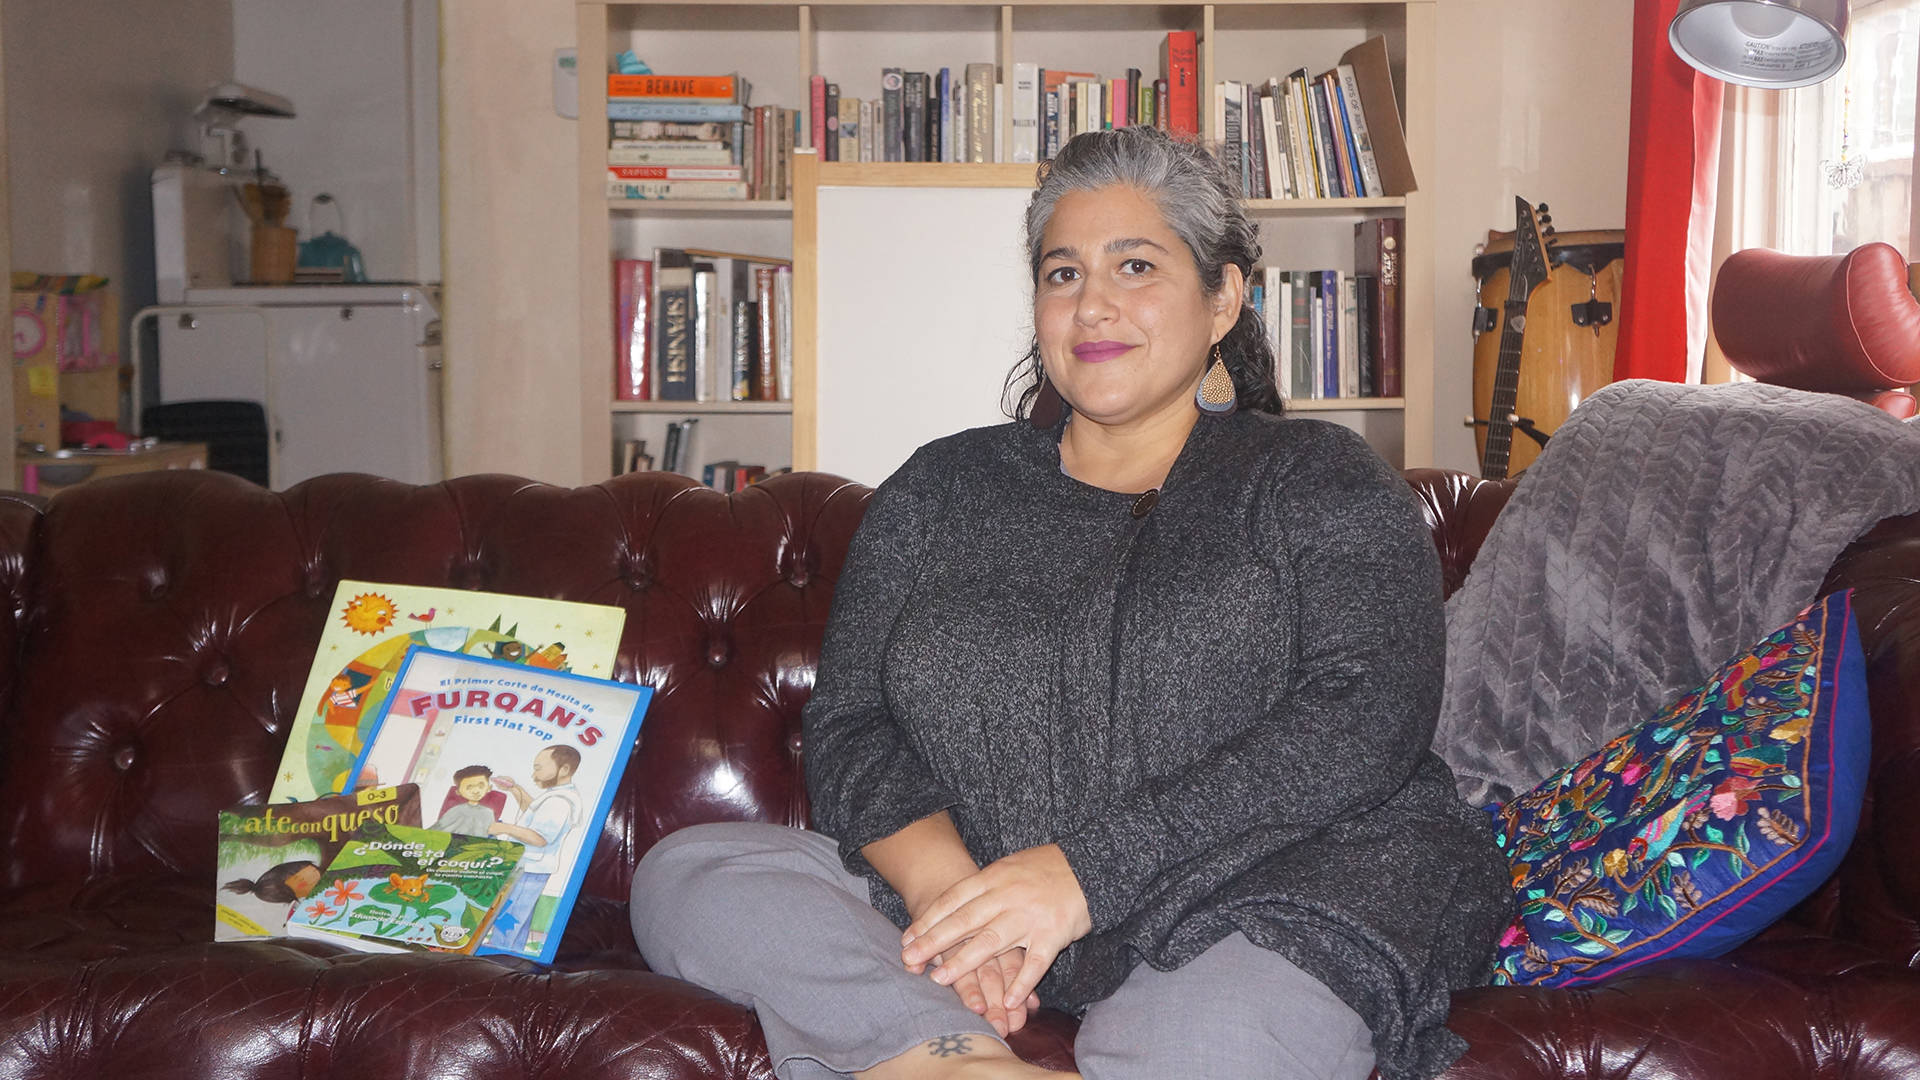 Oakland's Maceo Cabrera Estevez founded the subscription service Booklandia with the intention of helping bilingual families find high-quality, Spanish-language children's books. Azucena Rasilla